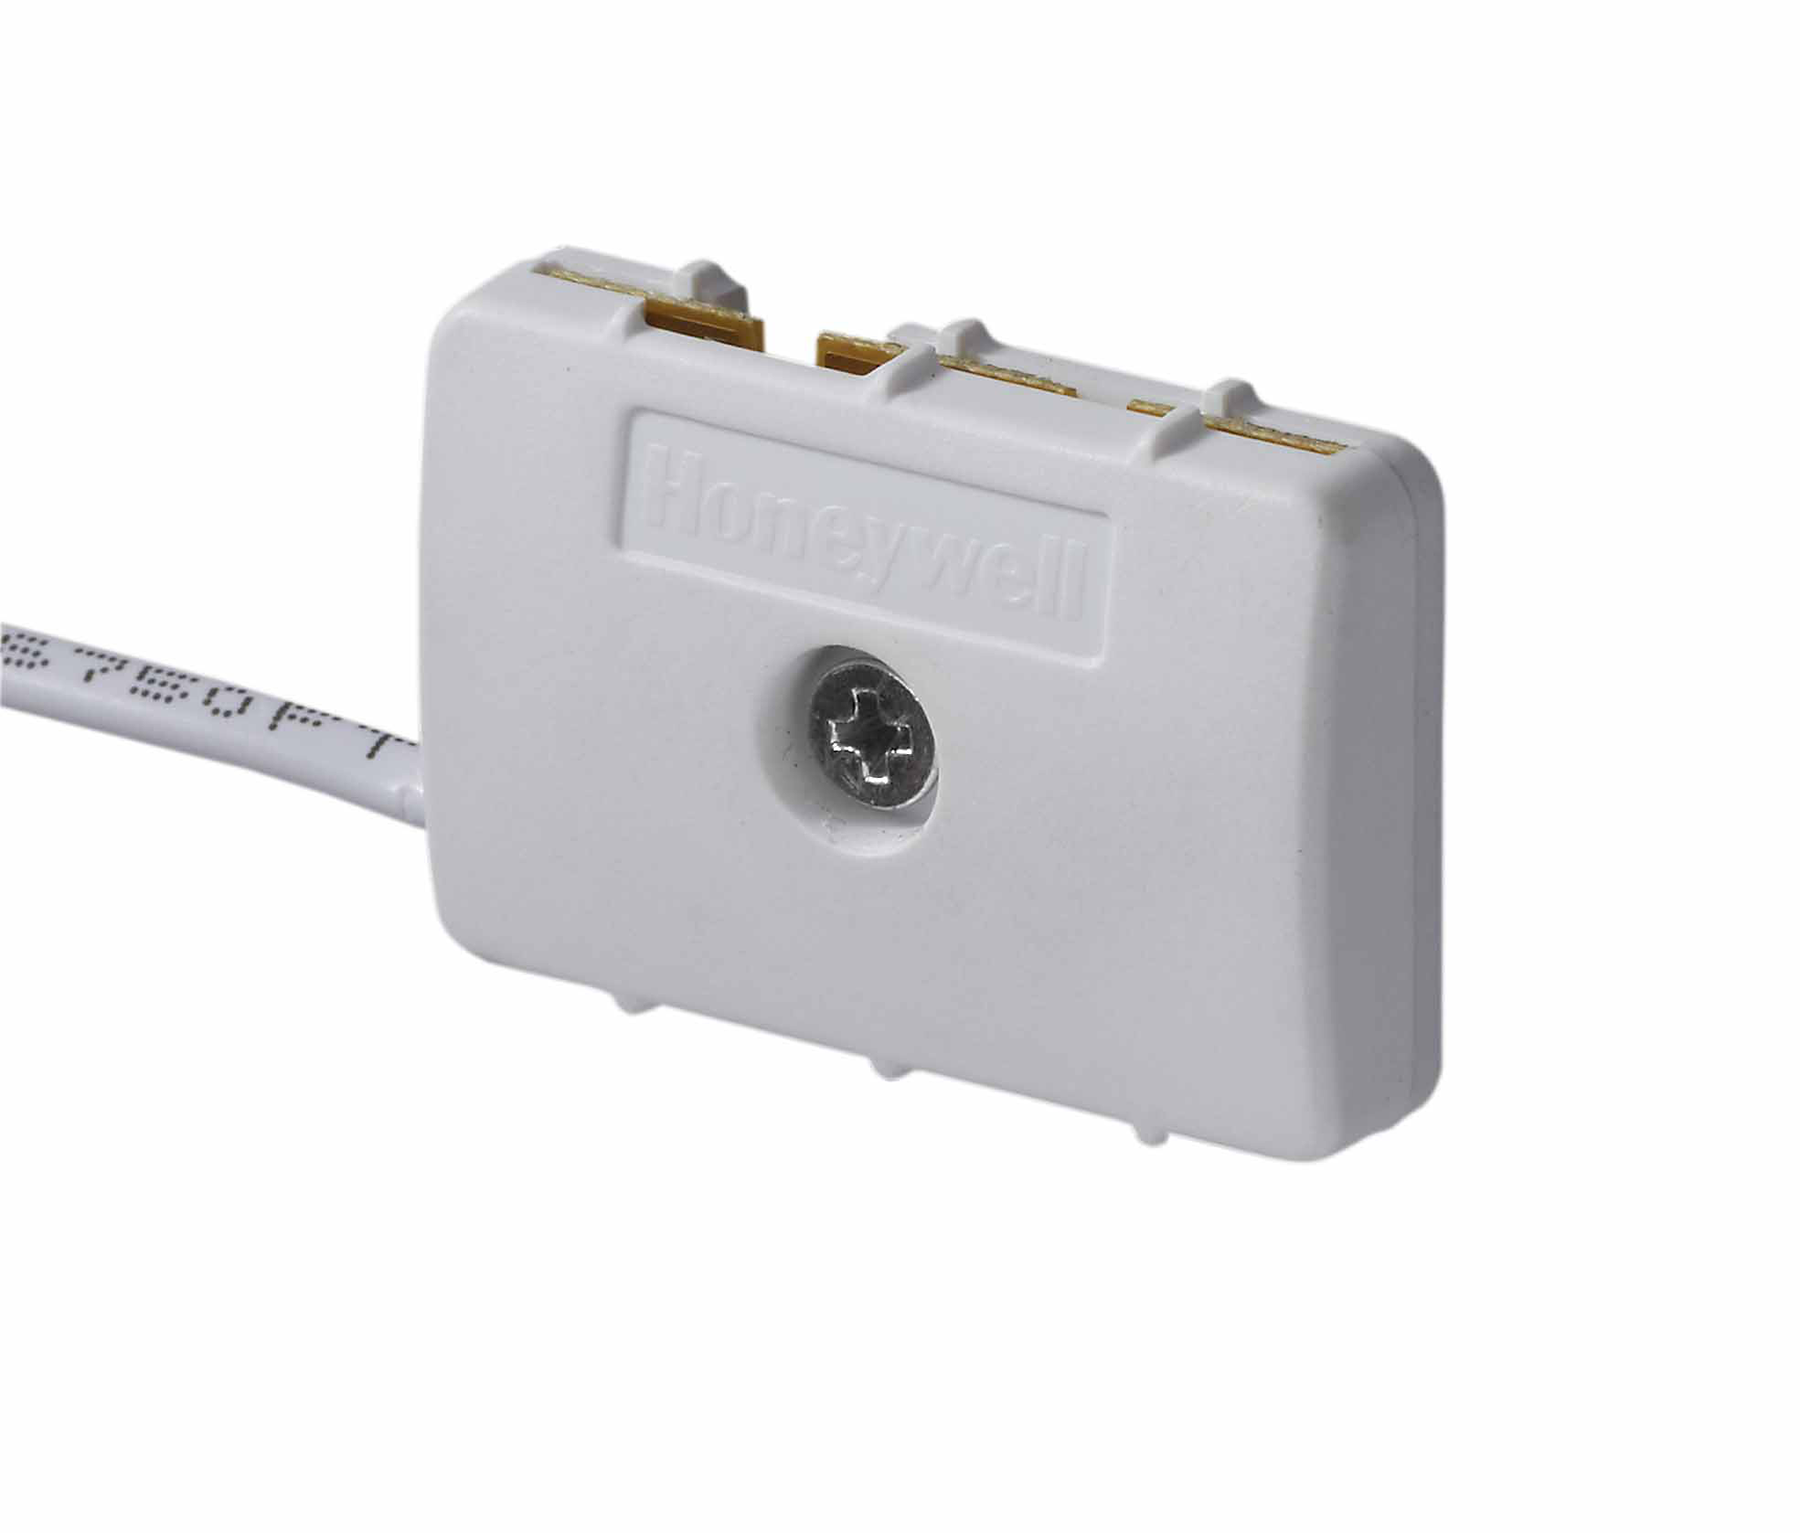 Gps Tracking Systems >> Honeywell FP280 Flood Probe - Advanced Security LLC